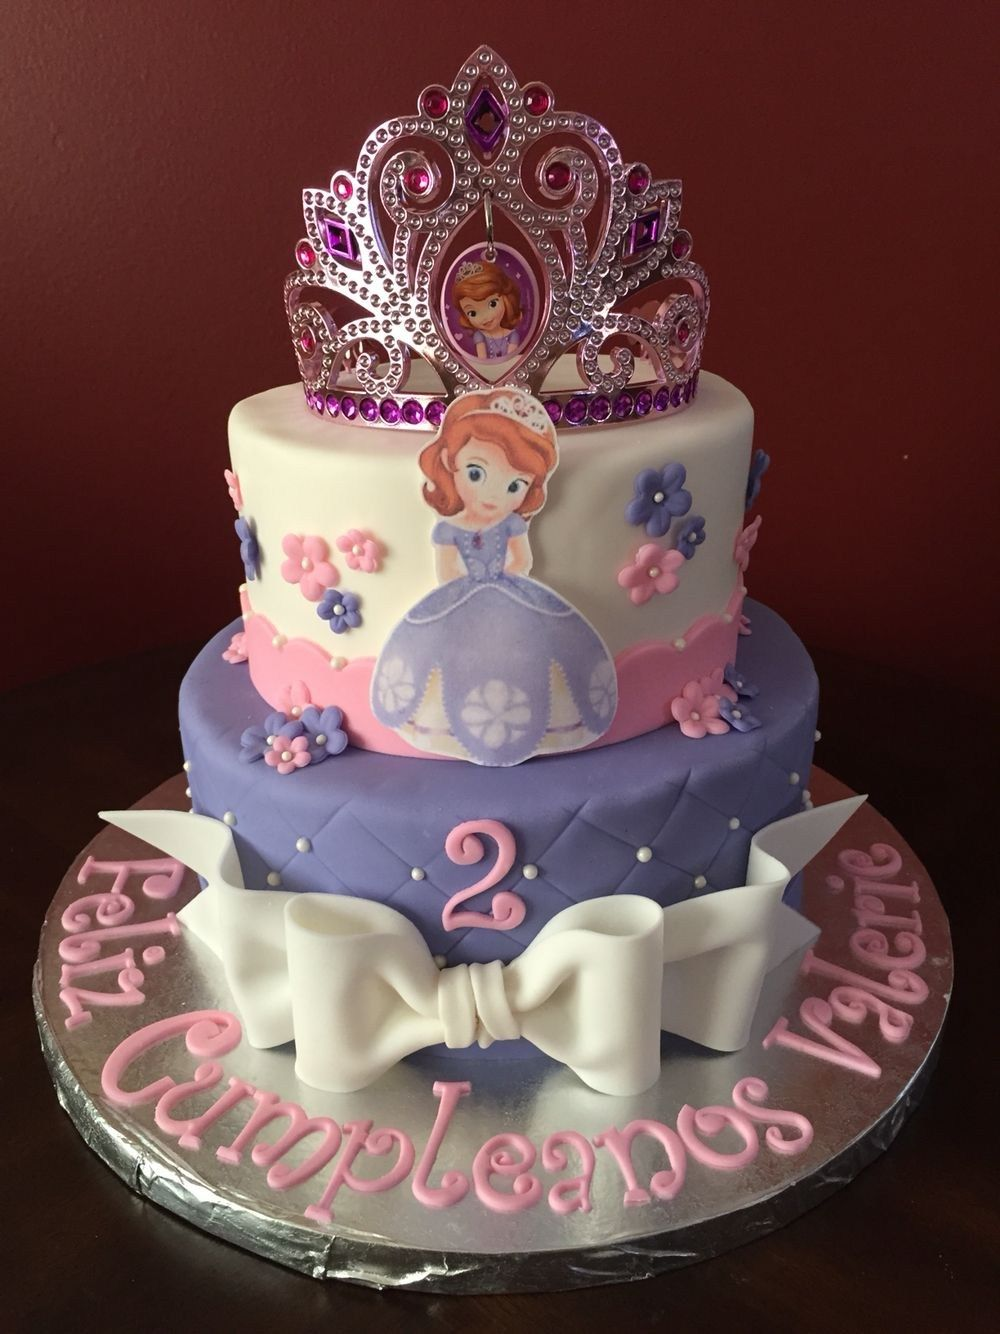 Enjoyable 21 Wonderful Picture Of Princess Sofia Birthday Cake Princess Funny Birthday Cards Online Overcheapnameinfo